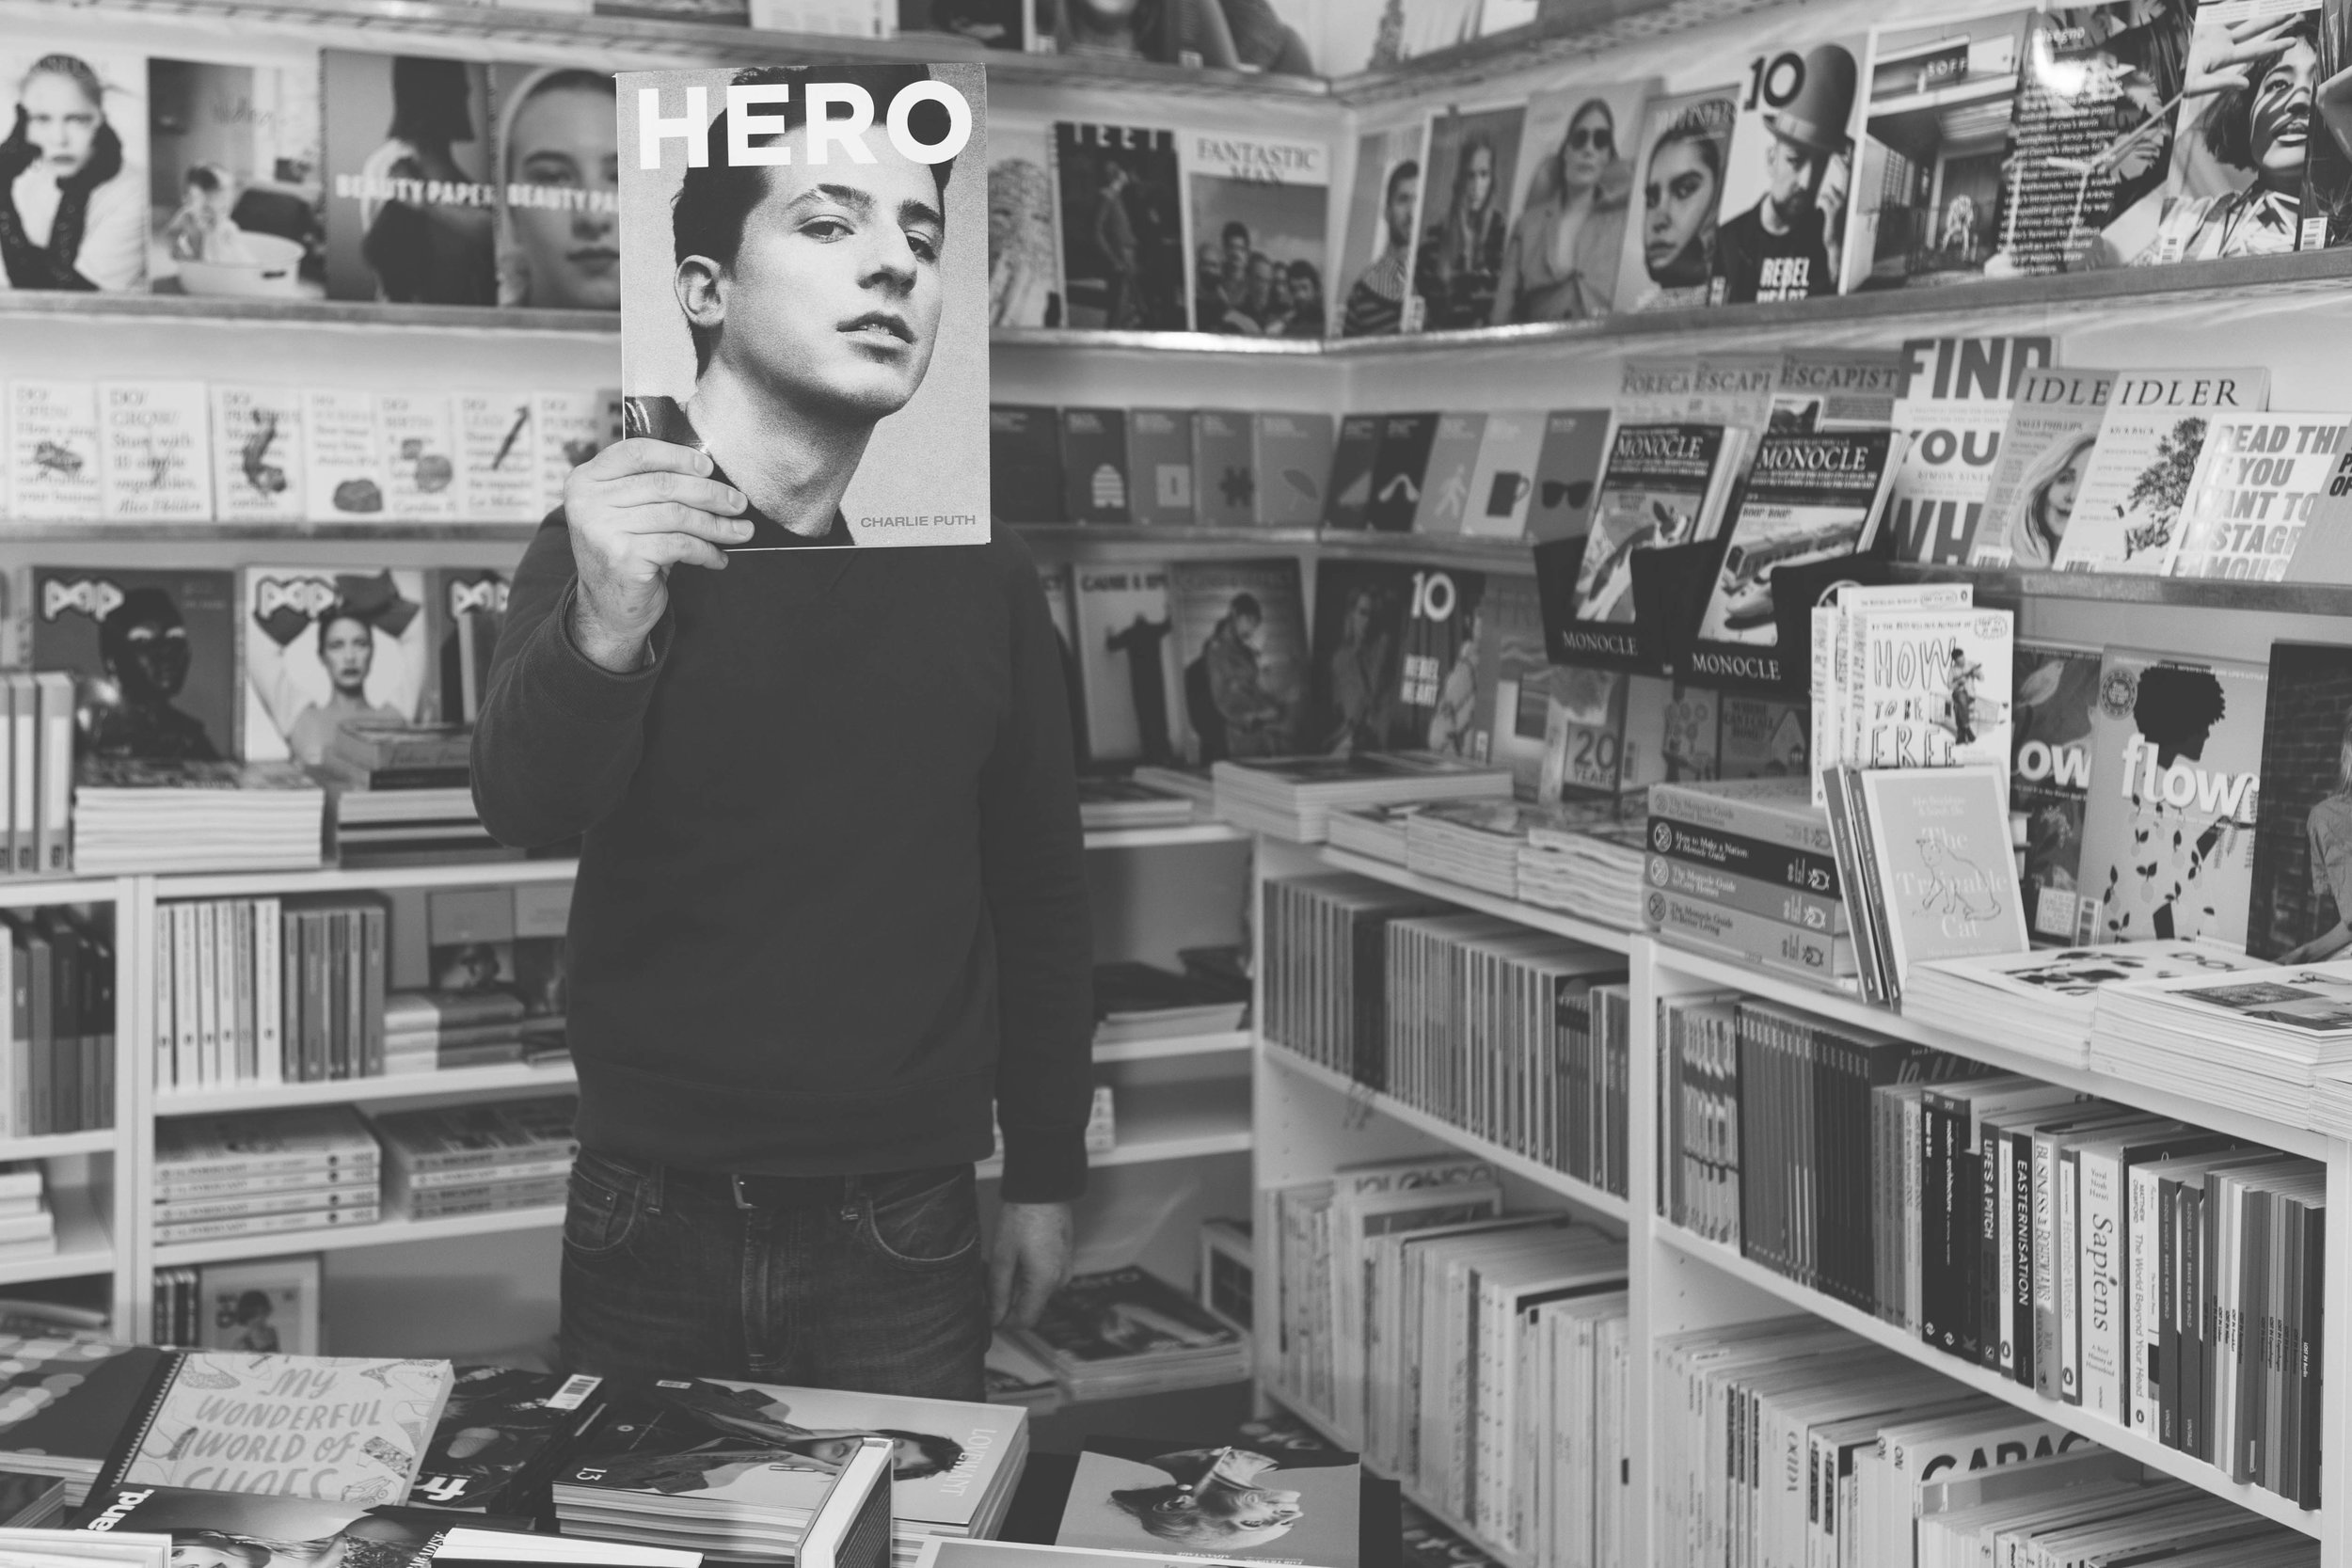 black and white portrait of a man holding a magazine up to his face, with the front cover replacing his face. Surrounded by books either side on white and metal shelves, filled with books and magazines up and down the walls.